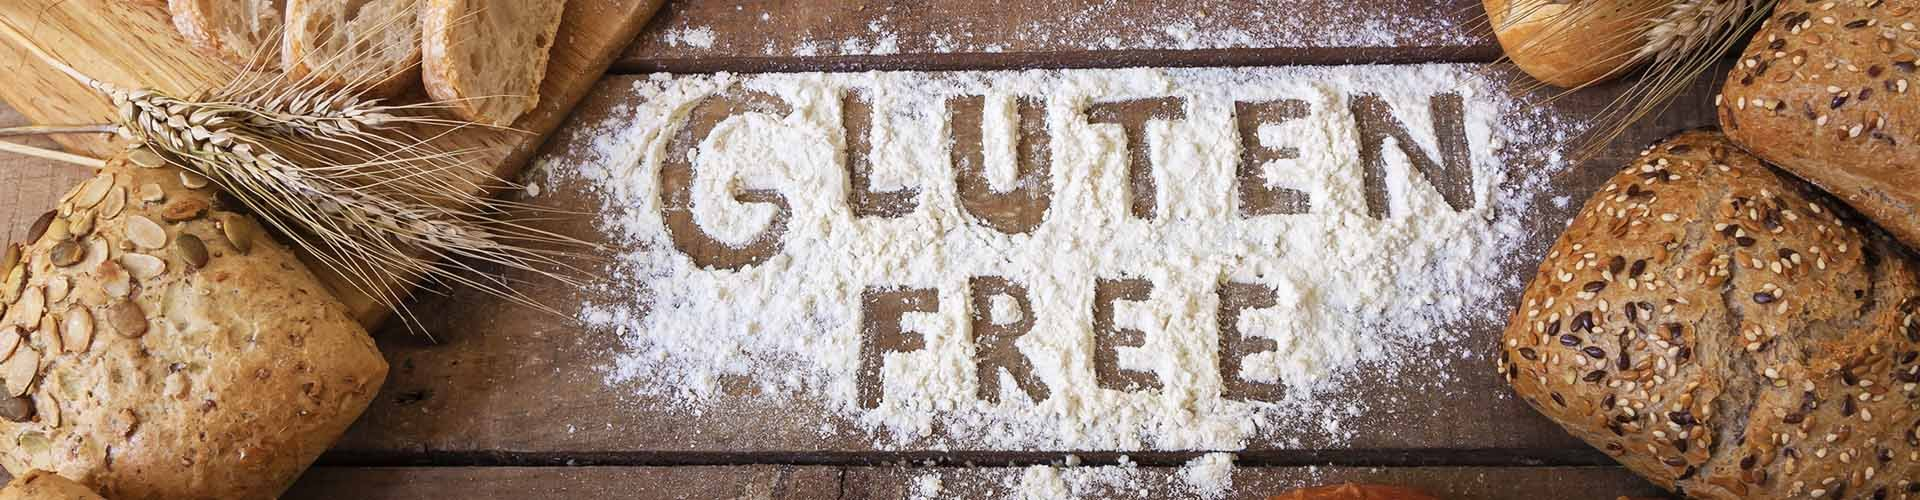 Is Going Gluten-Free a Healthy Decision?  Probably Not